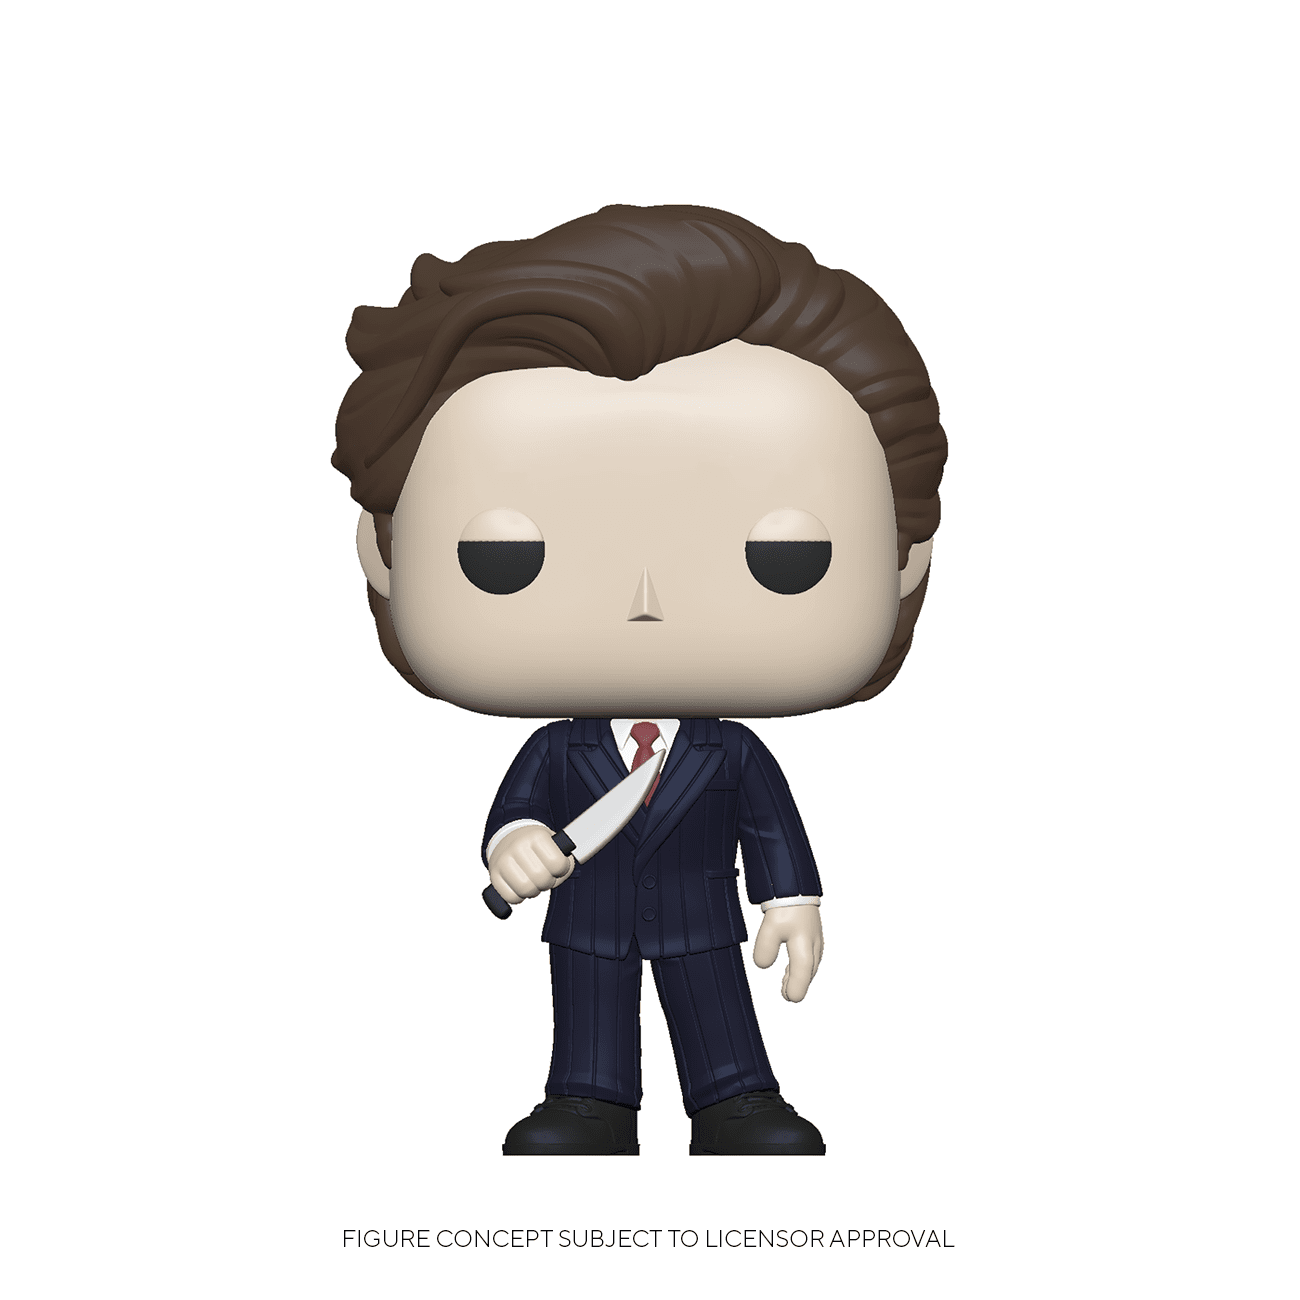 Funko Pop! Patrick in Suite with Knife and Business Card (American Psycho)